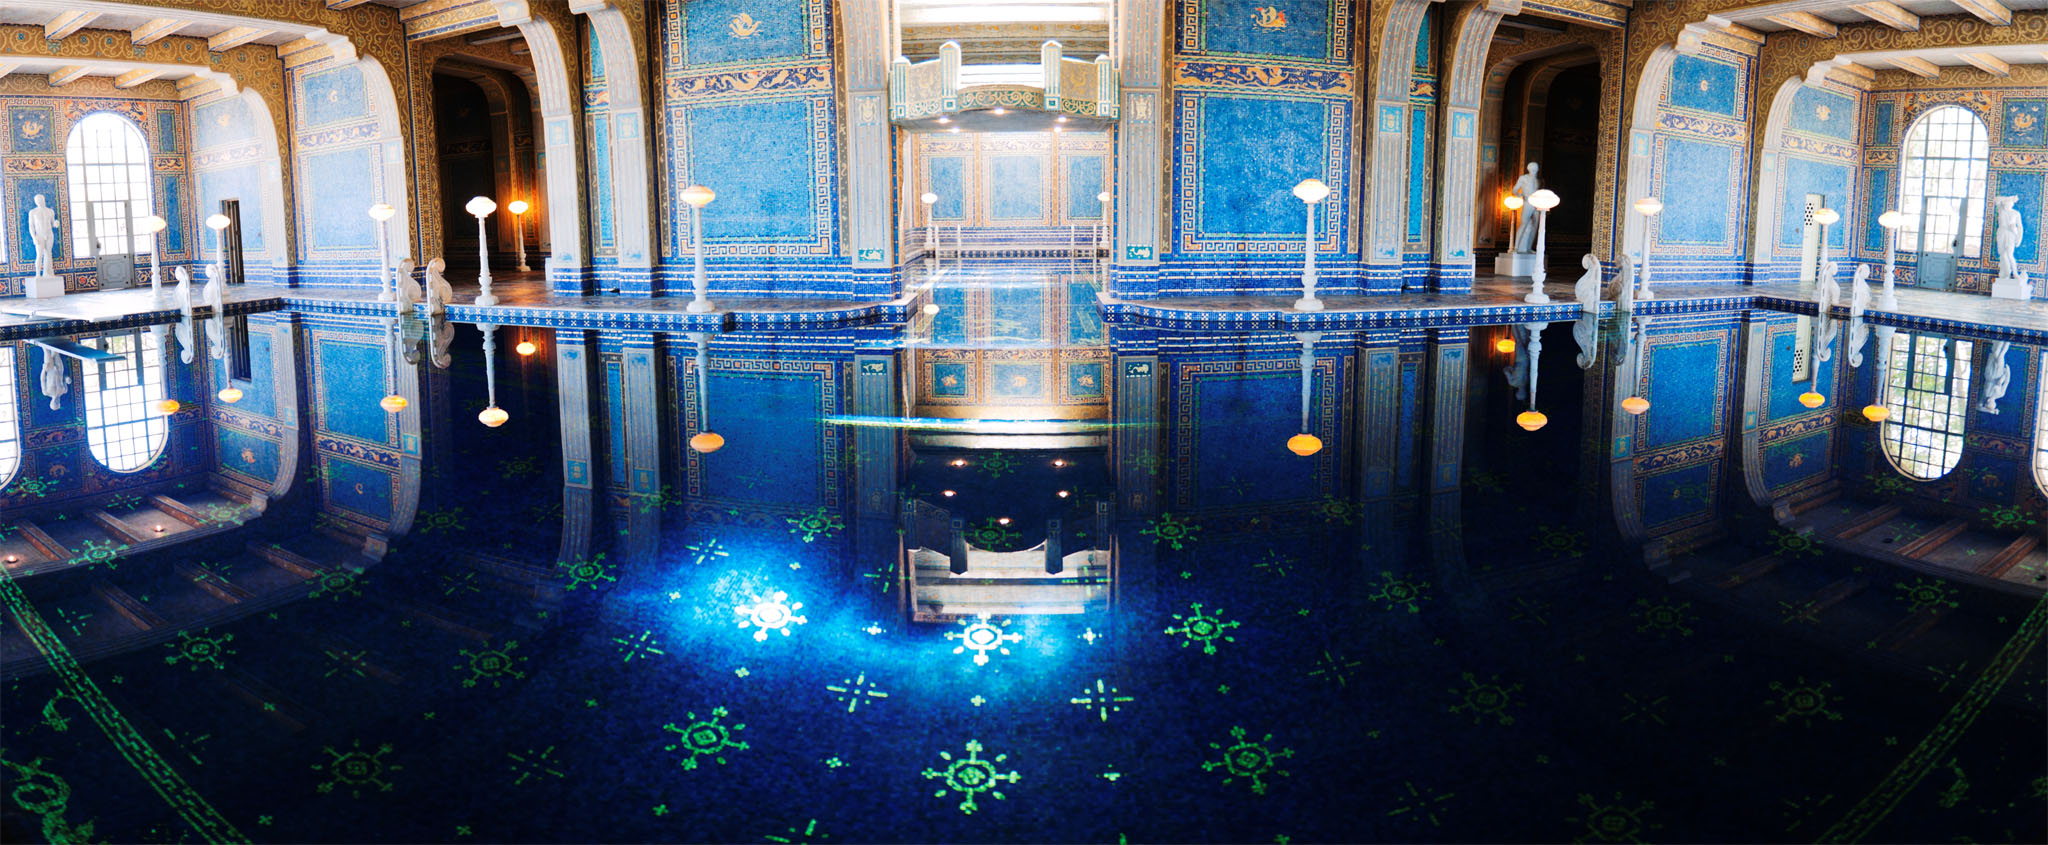 Hearst castle underground swimming pool by realsheva on for Underground pool